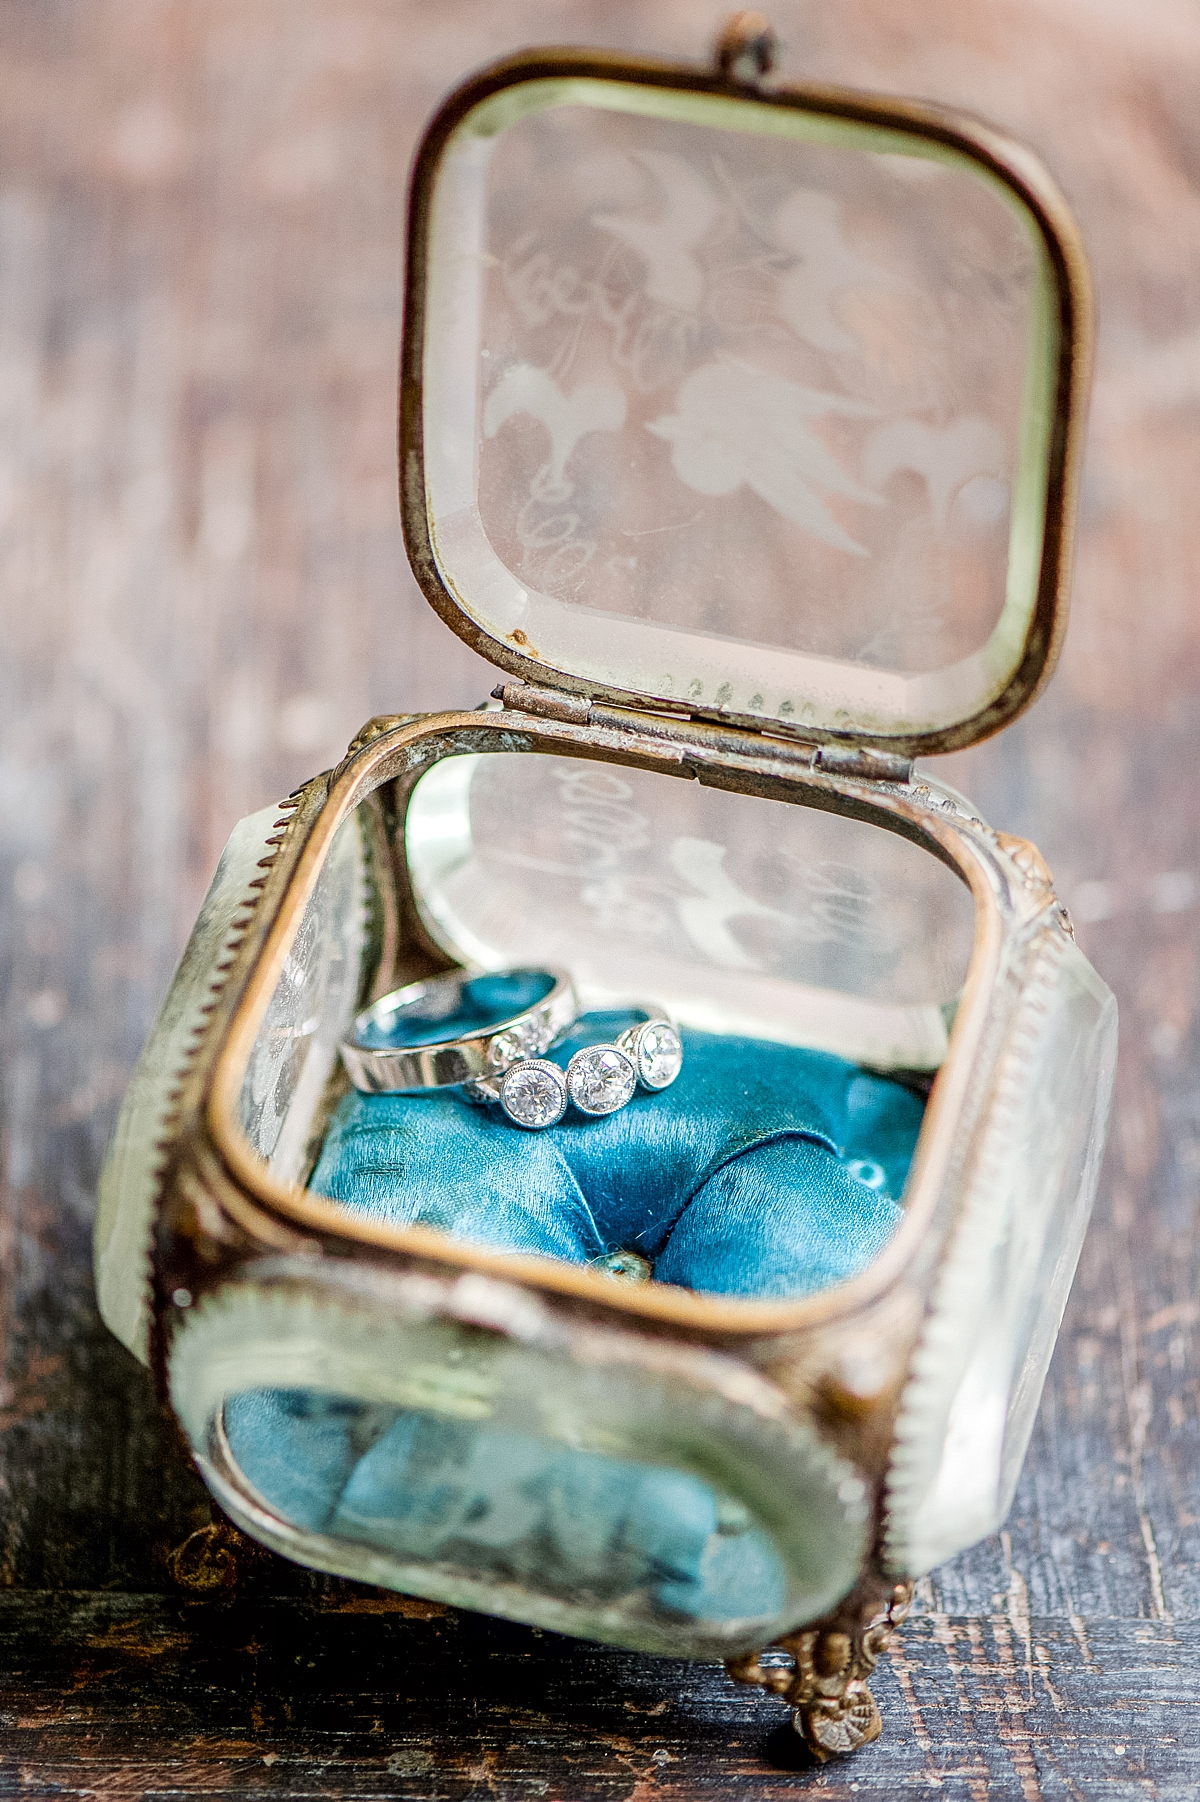 vintage crystal ring box with wedding bands